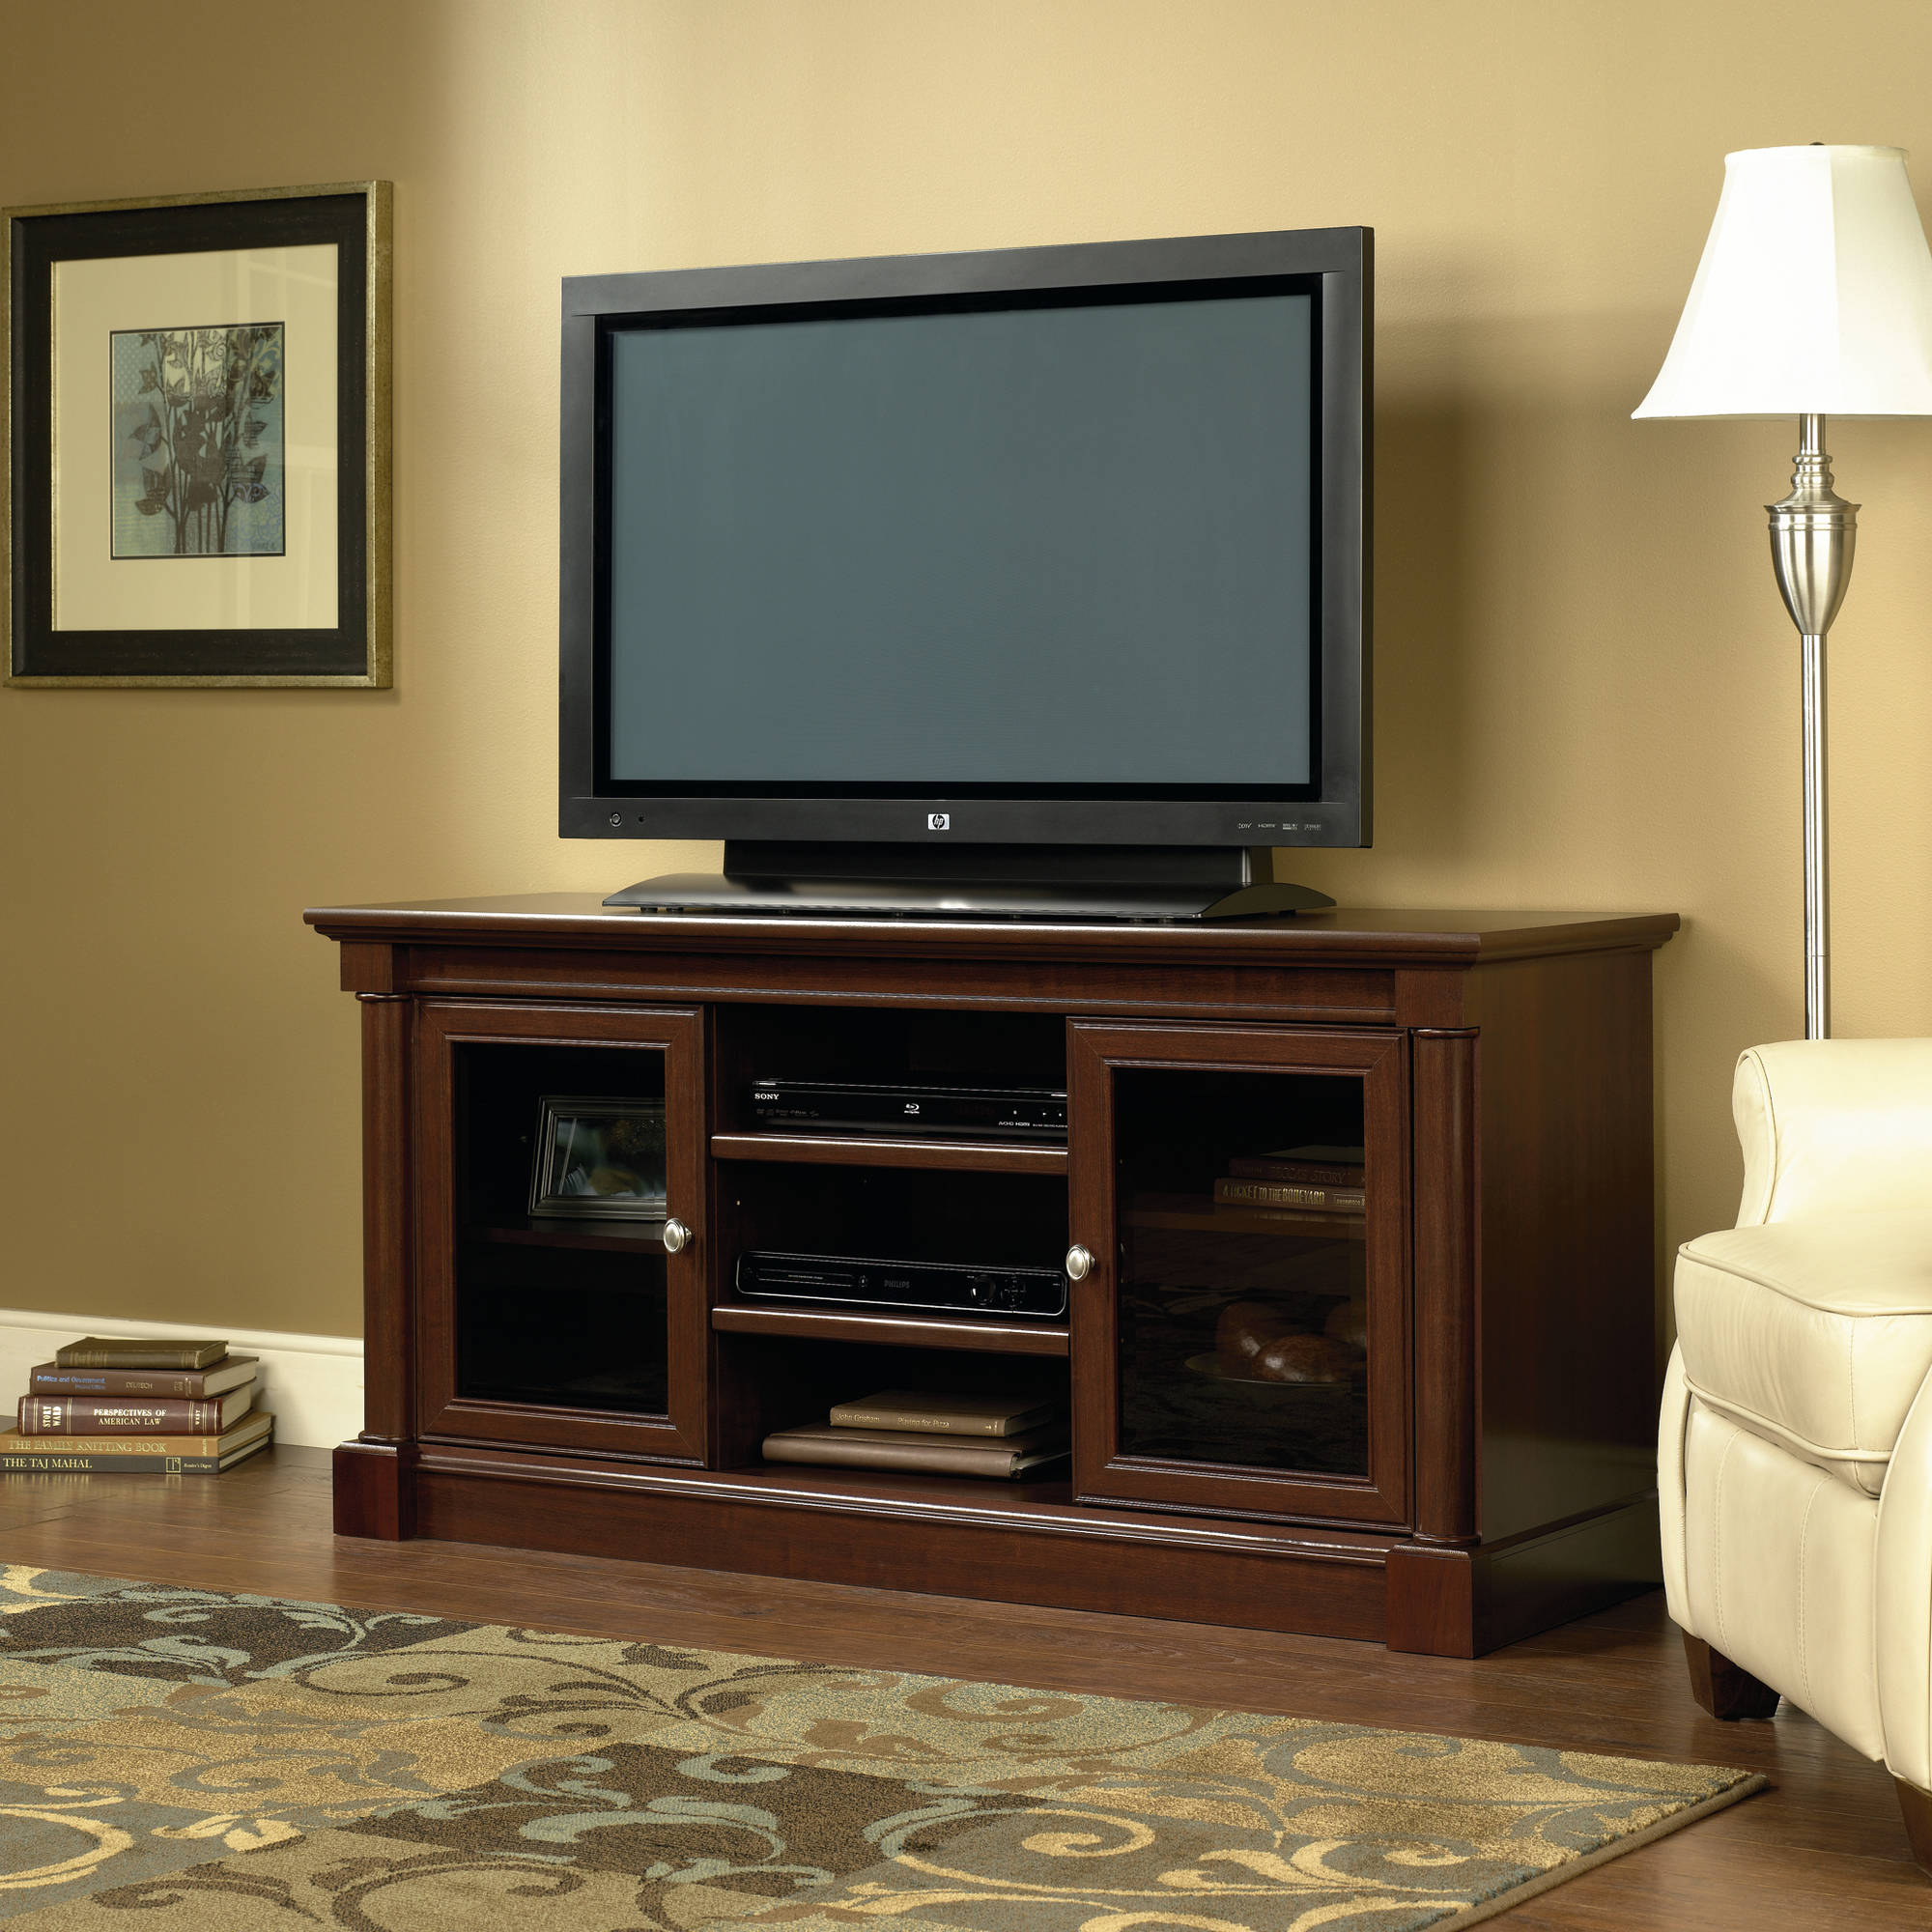 "Sauder Palladia Entertainment Credenza for TV's up to 60"", Cherry Finish"